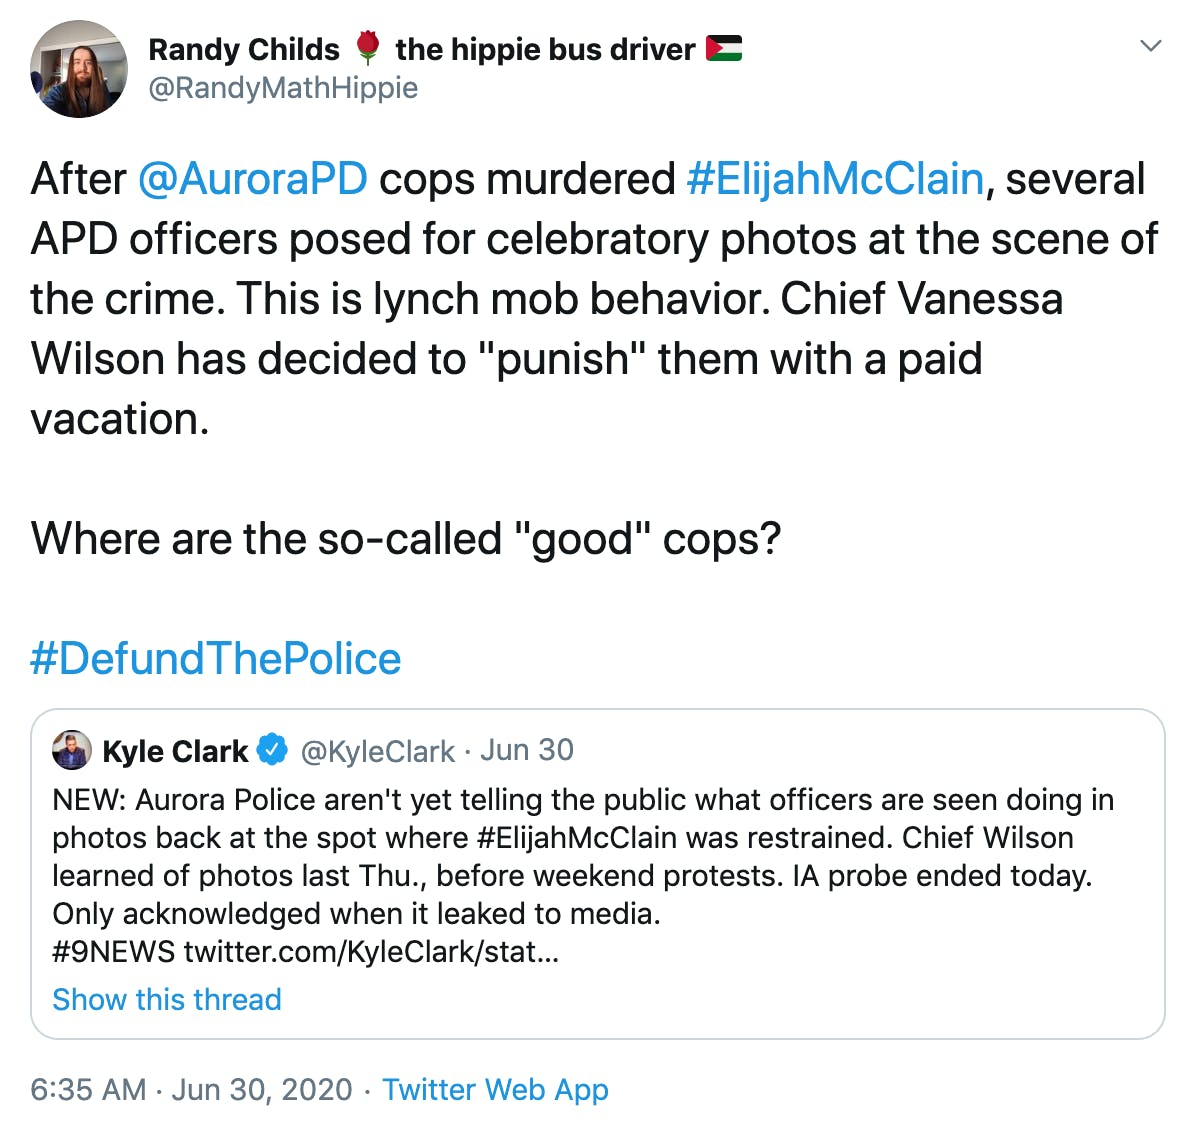 """After  @AuroraPD  cops murdered #ElijahMcClain, several APD officers posed for celebratory photos at the scene of the crime. This is lynch mob behavior. Chief Vanessa Wilson has decided to """"punish"""" them with a paid vacation.  Where are the so-called """"good"""" cops?"""